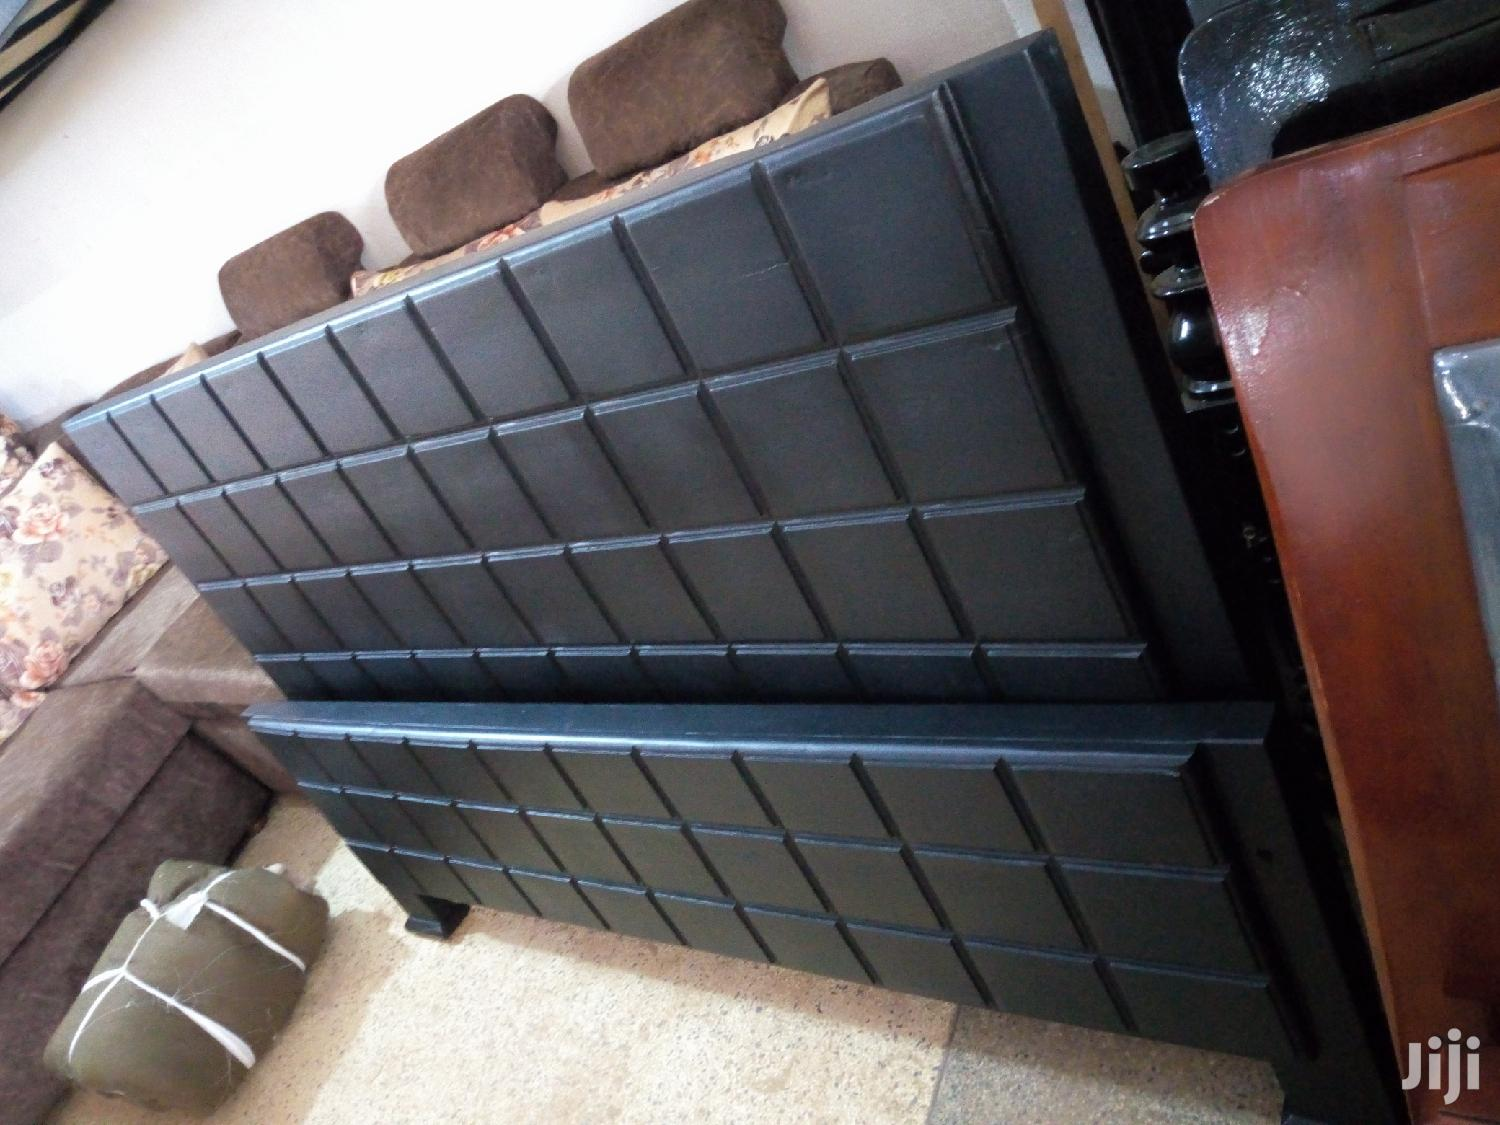 Mega Bed 5 by 6 Black in Colour